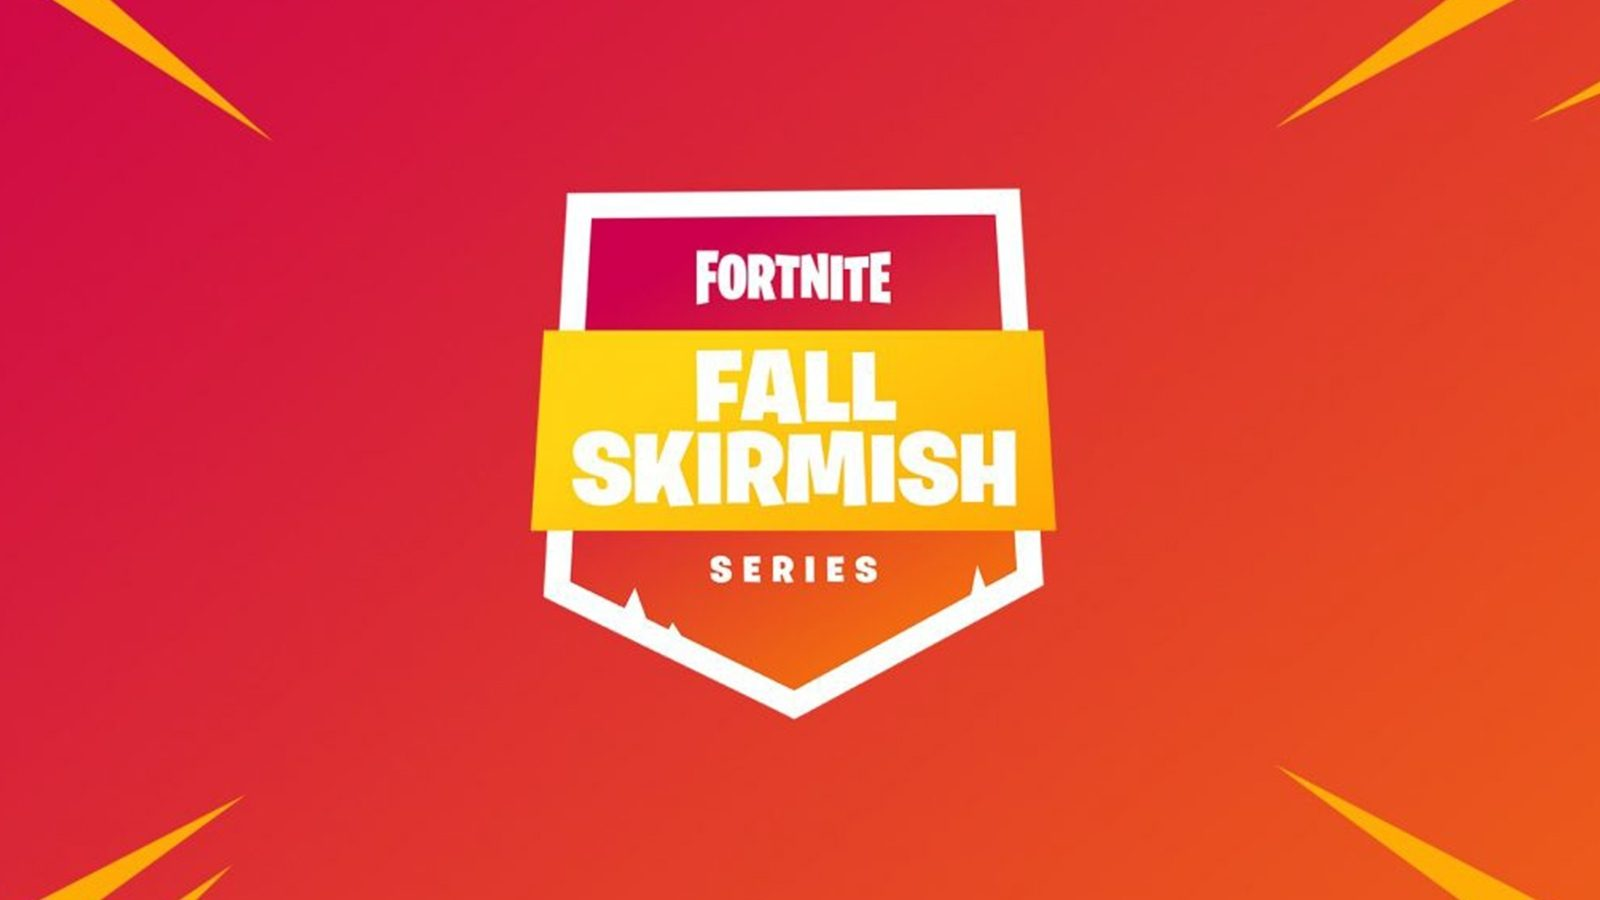 Epic games reveals new details for the Fall skirmish